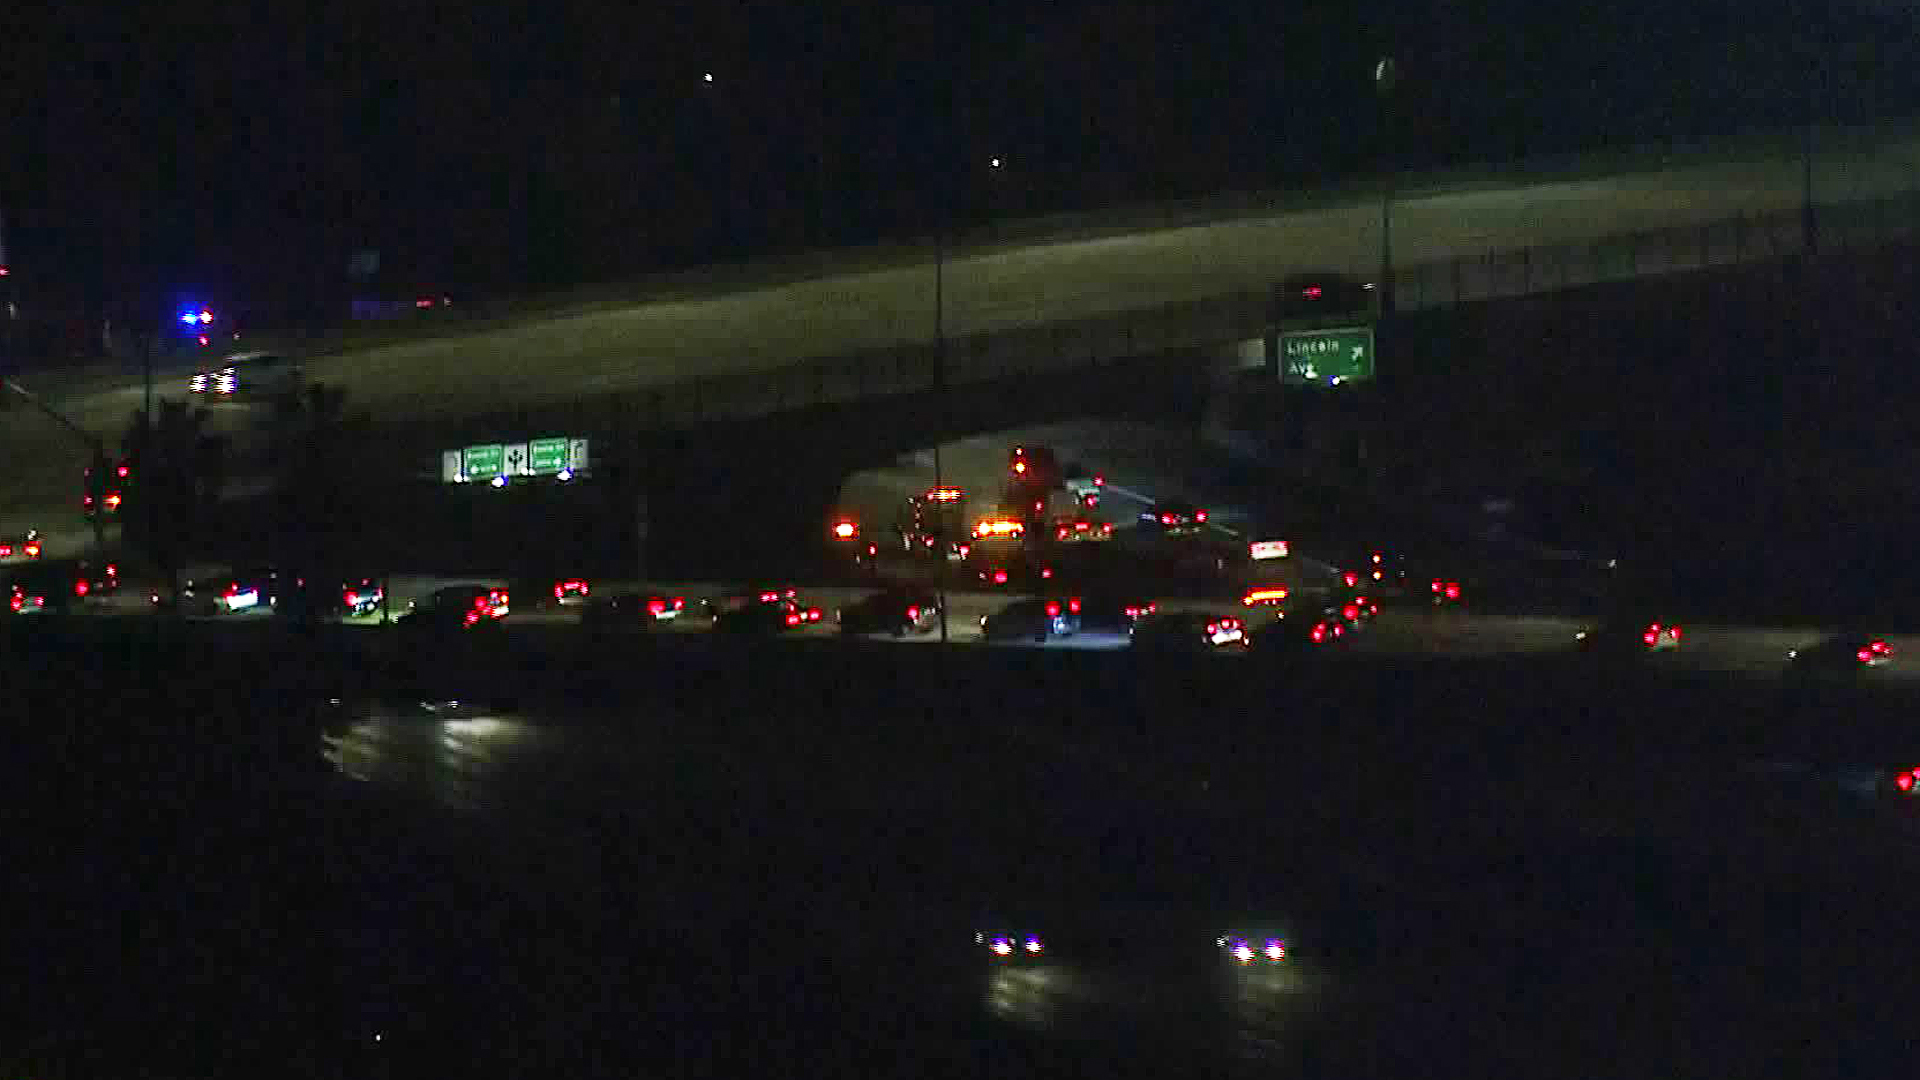 Officials investigate a fatal crash on the 5 Freeway in Anaheim on March 13, 2019. (Credit: KTLA)